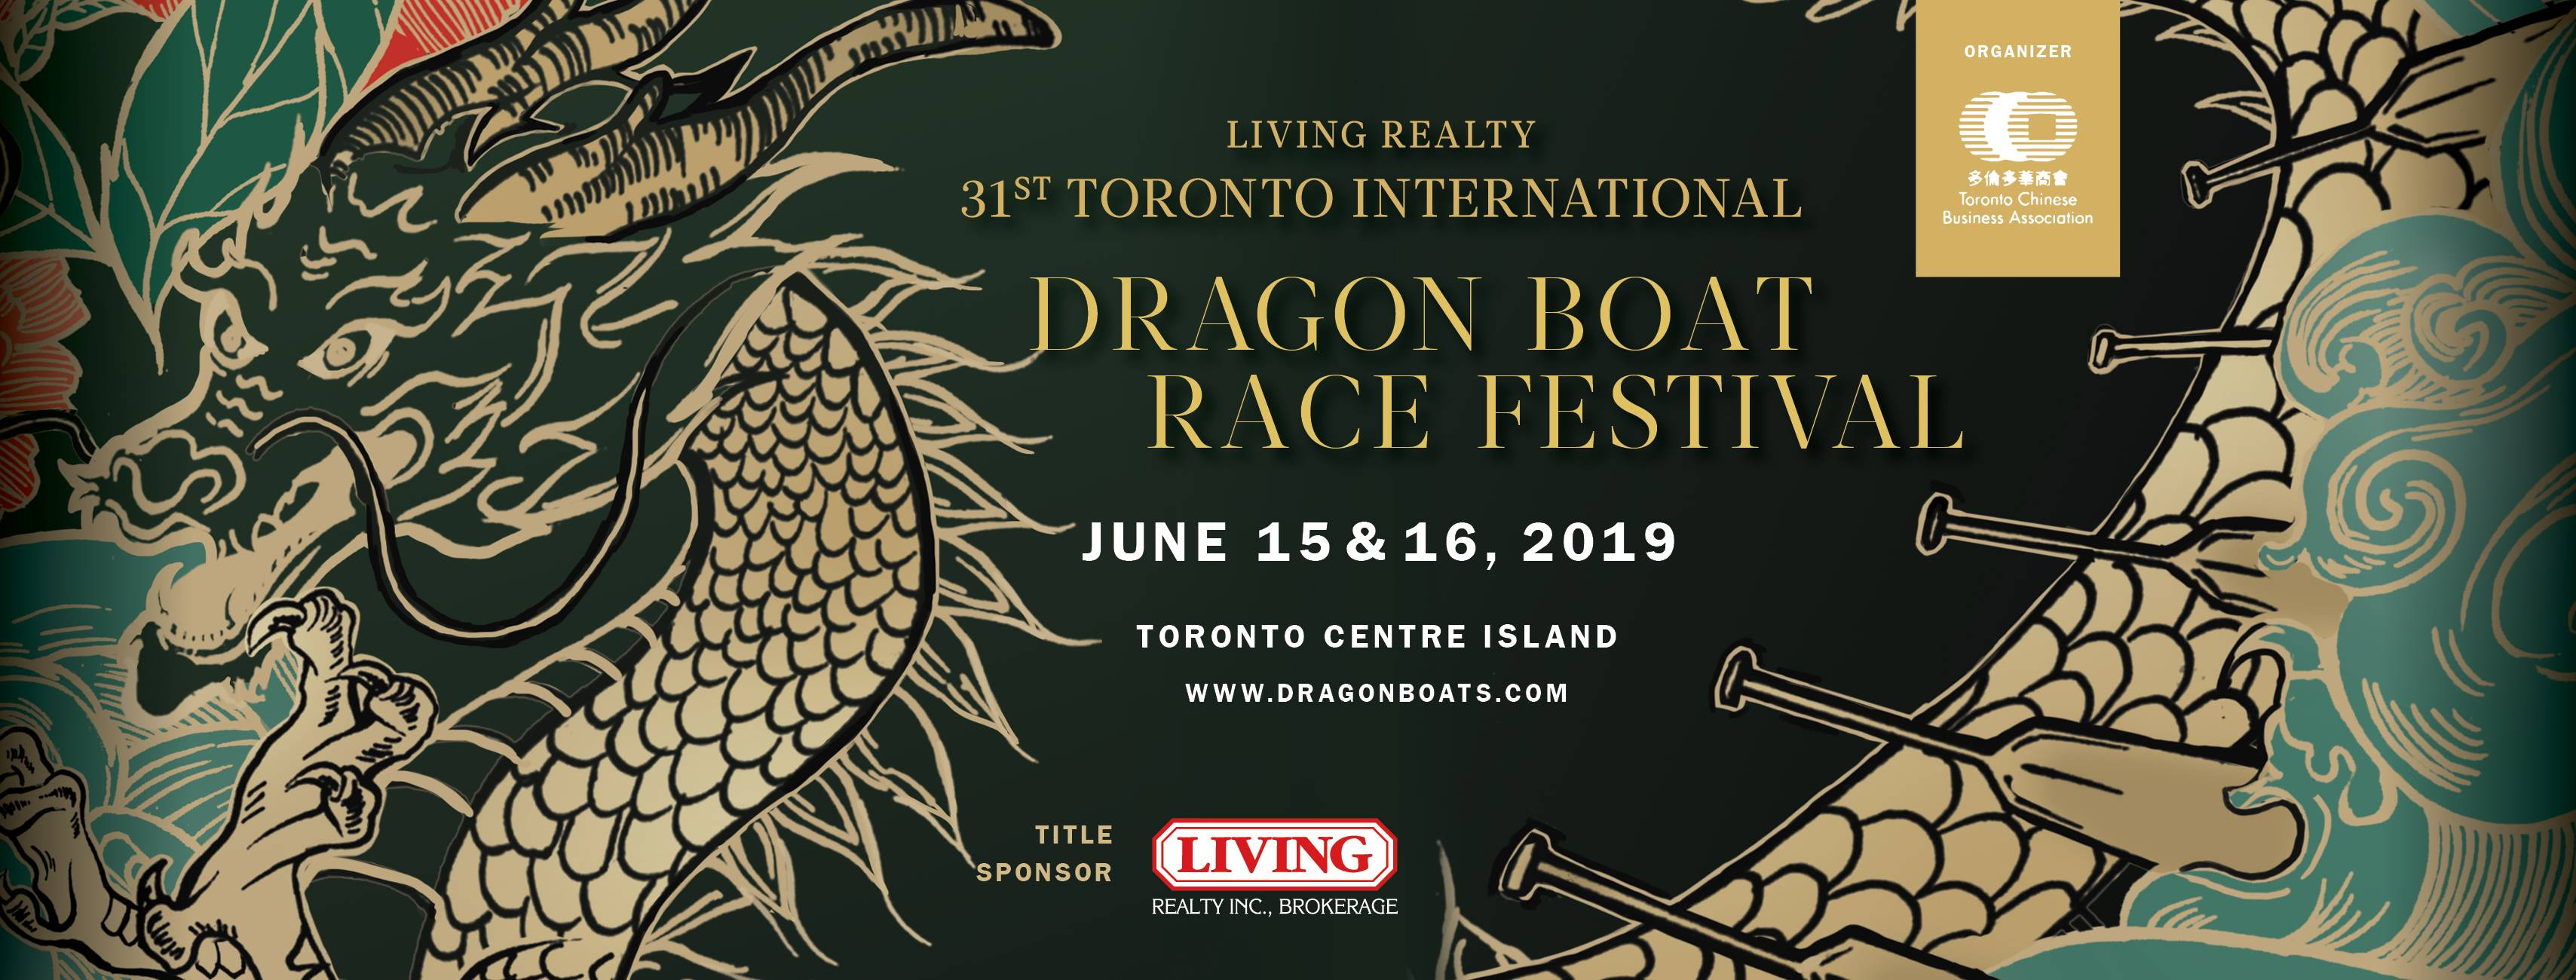 31st Toronto International Dragon Boat Race Festival